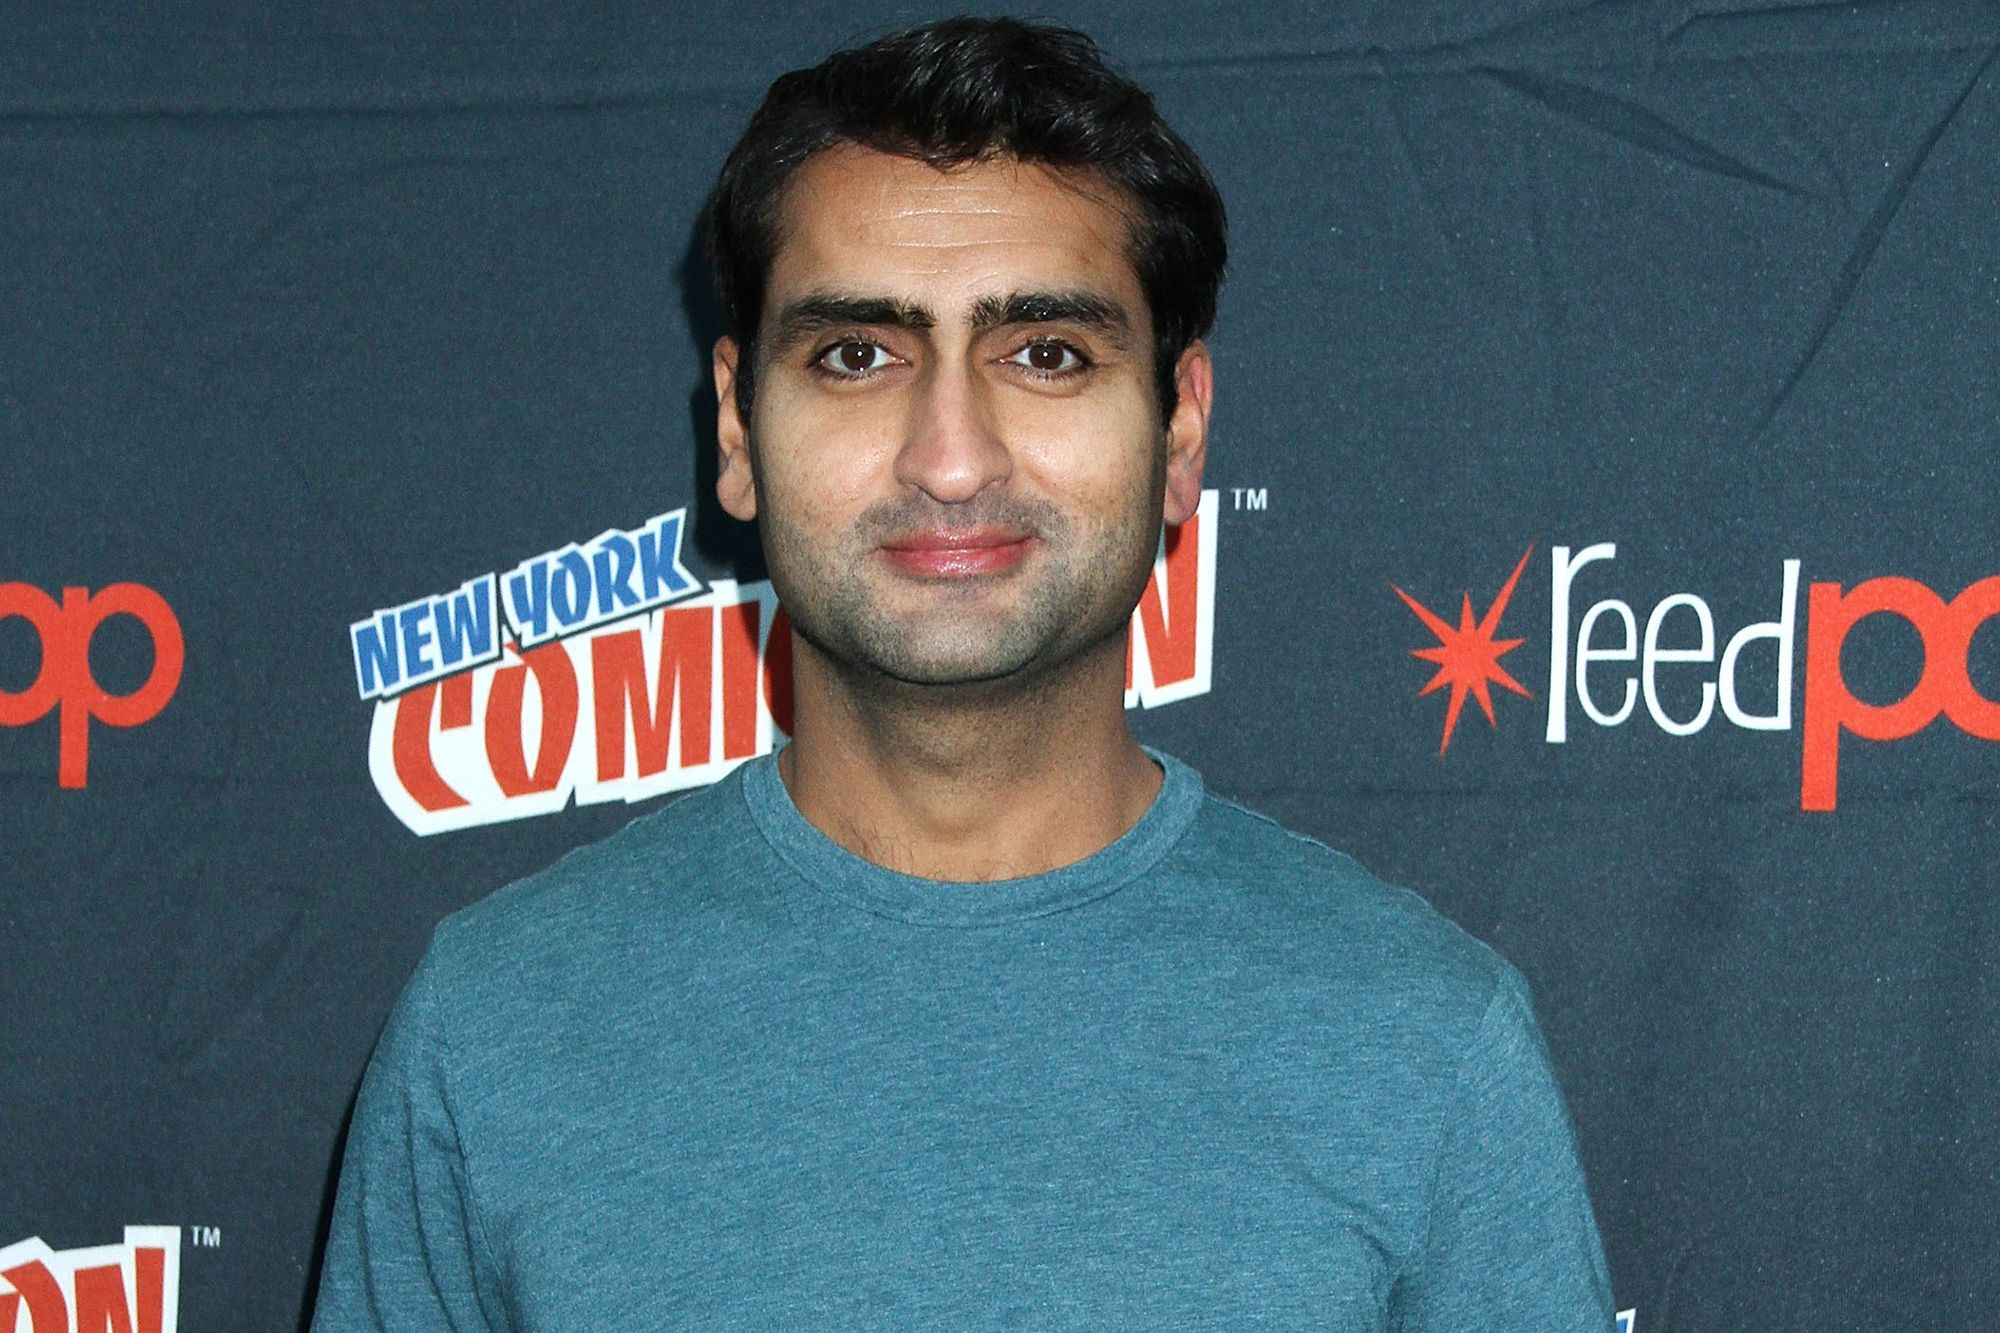 kumail-nanjiani-gets-body-shamed-after-posting-holiday-pics-amid-false-accusations-he-took-steroids